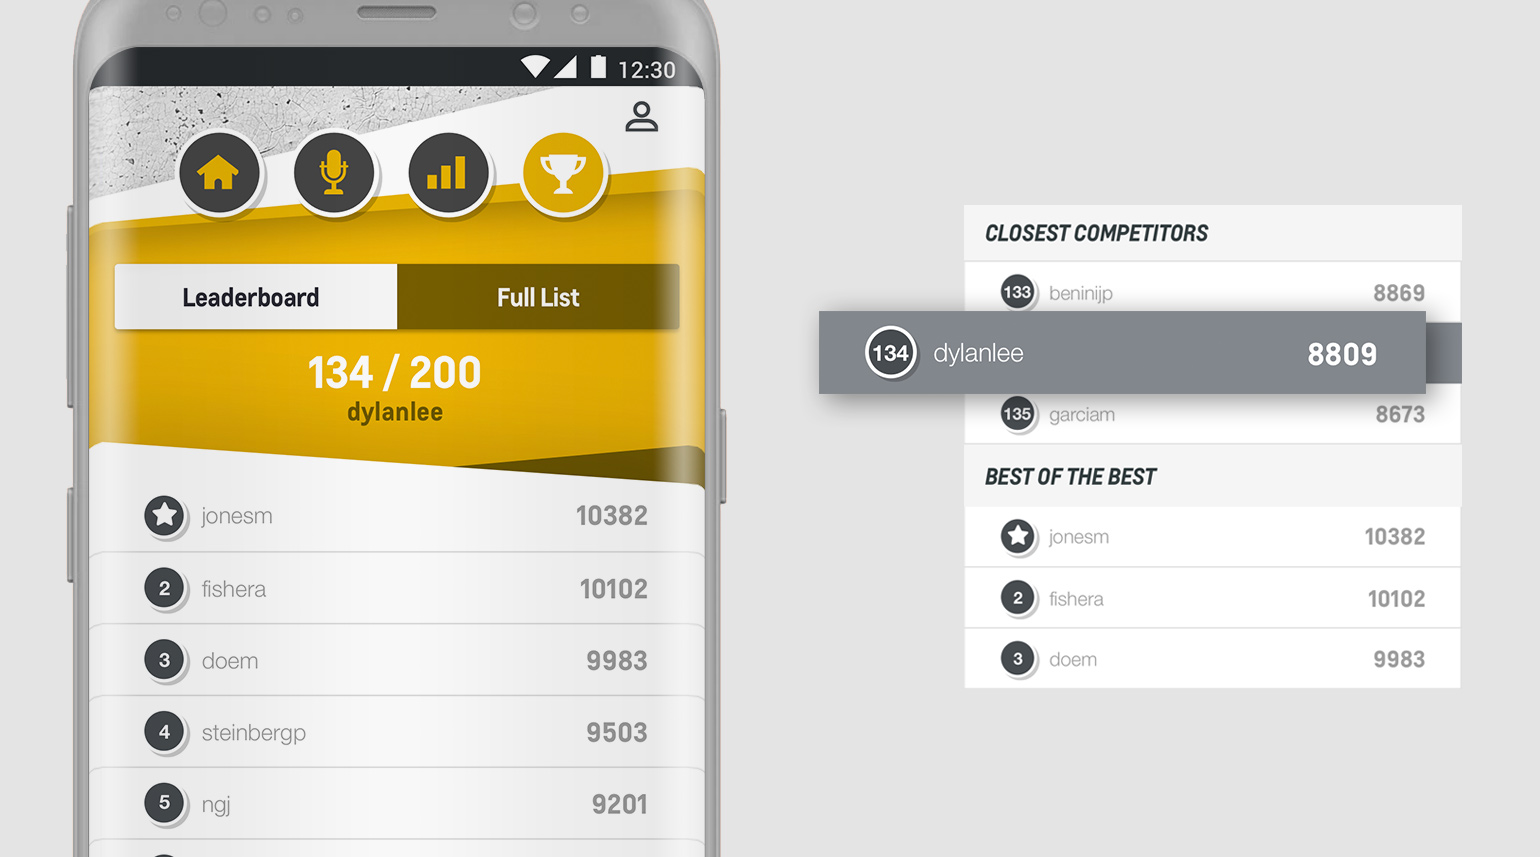 UI components highlighting peer to peer gamification and leaderboard functionality.